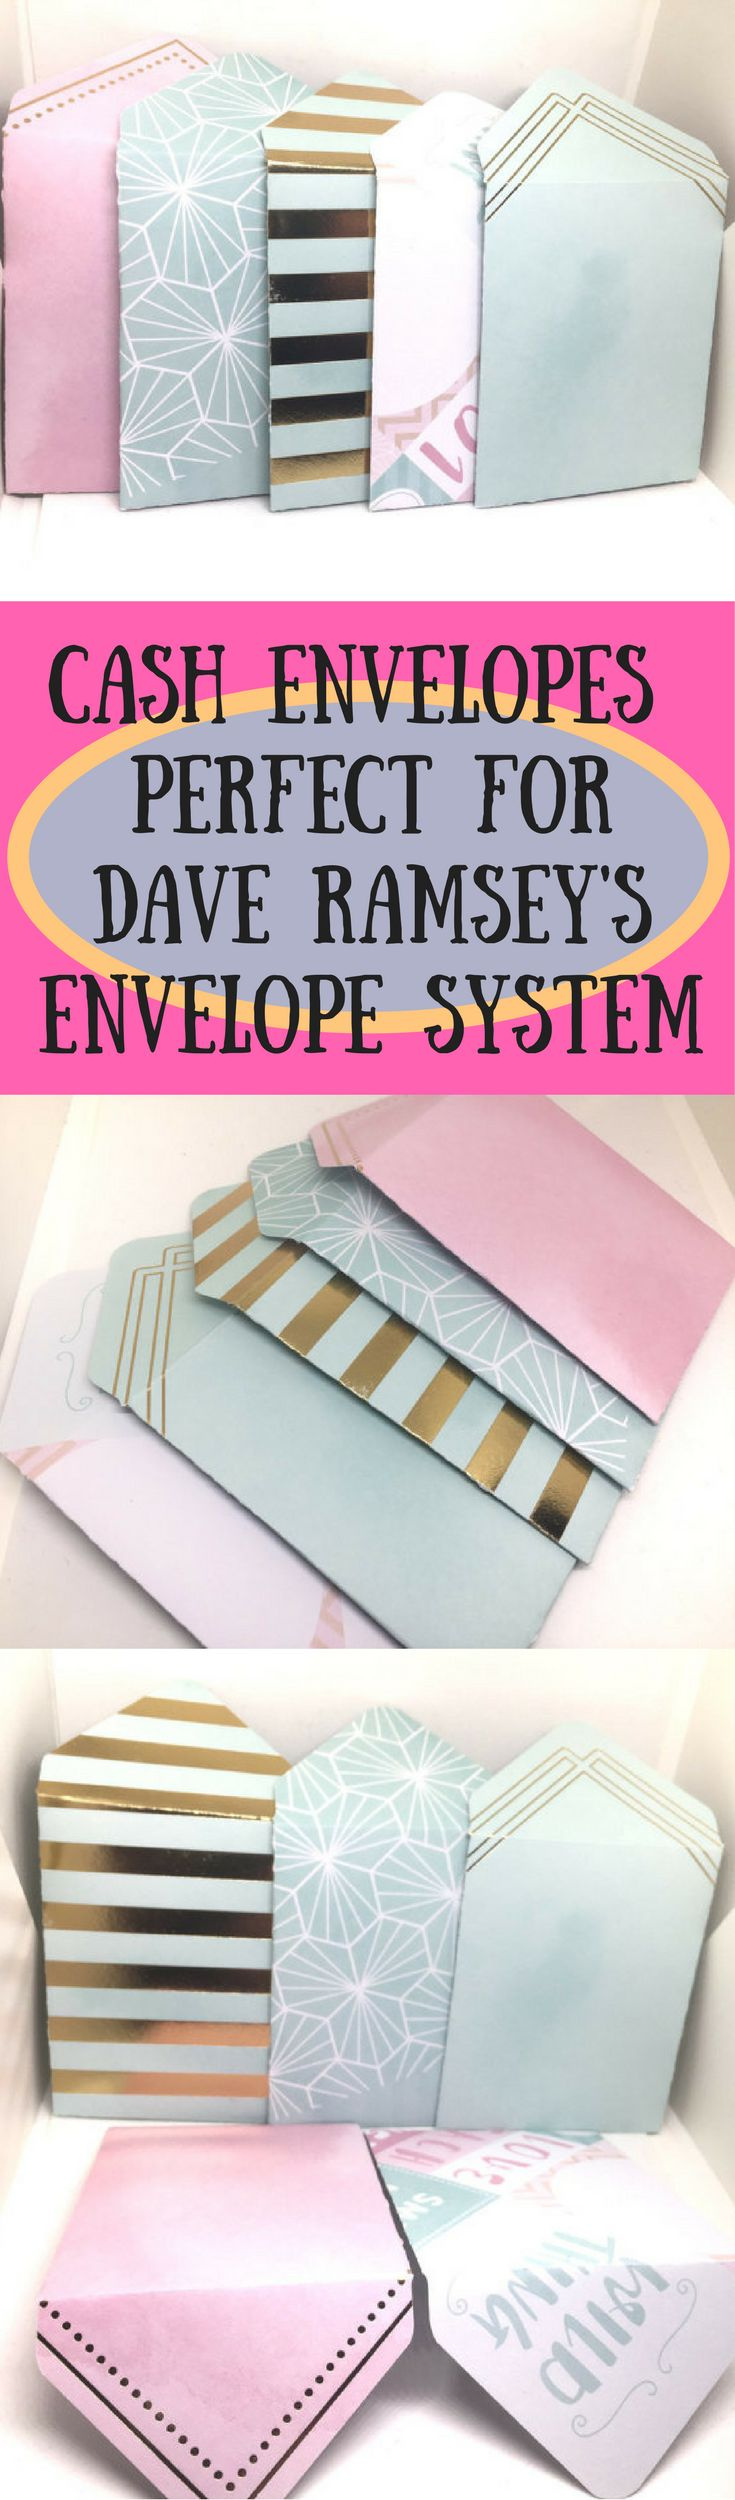 These stylish Cash Envelopes are absolutely perfect for Dave Ramsey's Cash Envelope Budgeting System. Budgeting with expression!!  #cashenvelopesystem #daveramsey #budgeting #saving #goingdebtfree #frugalliving #moneysense #organization #affiliate